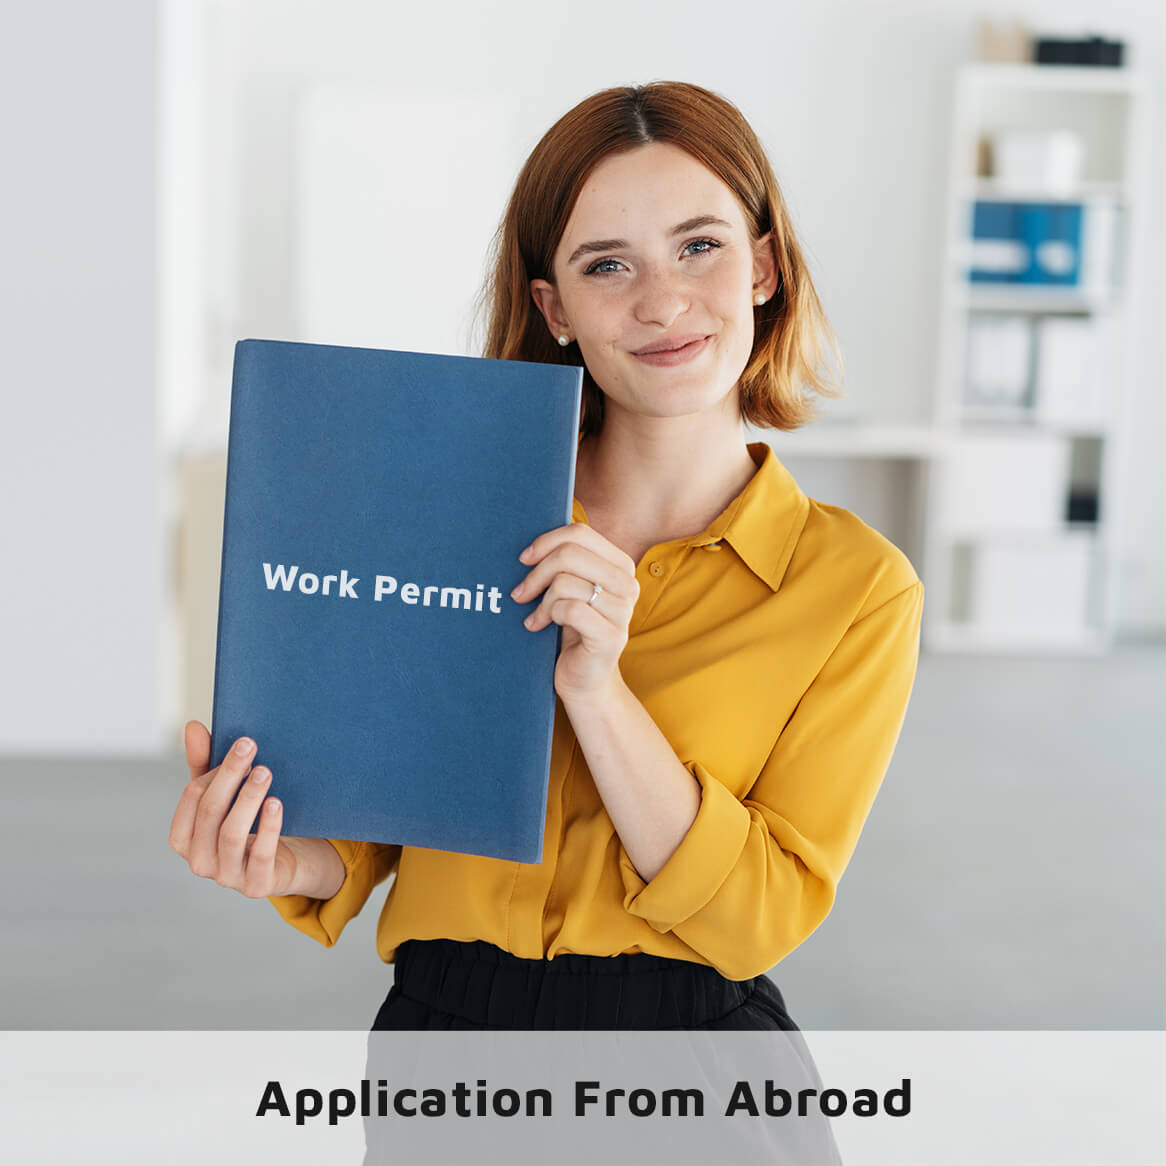 Work Permit Application from Abroad